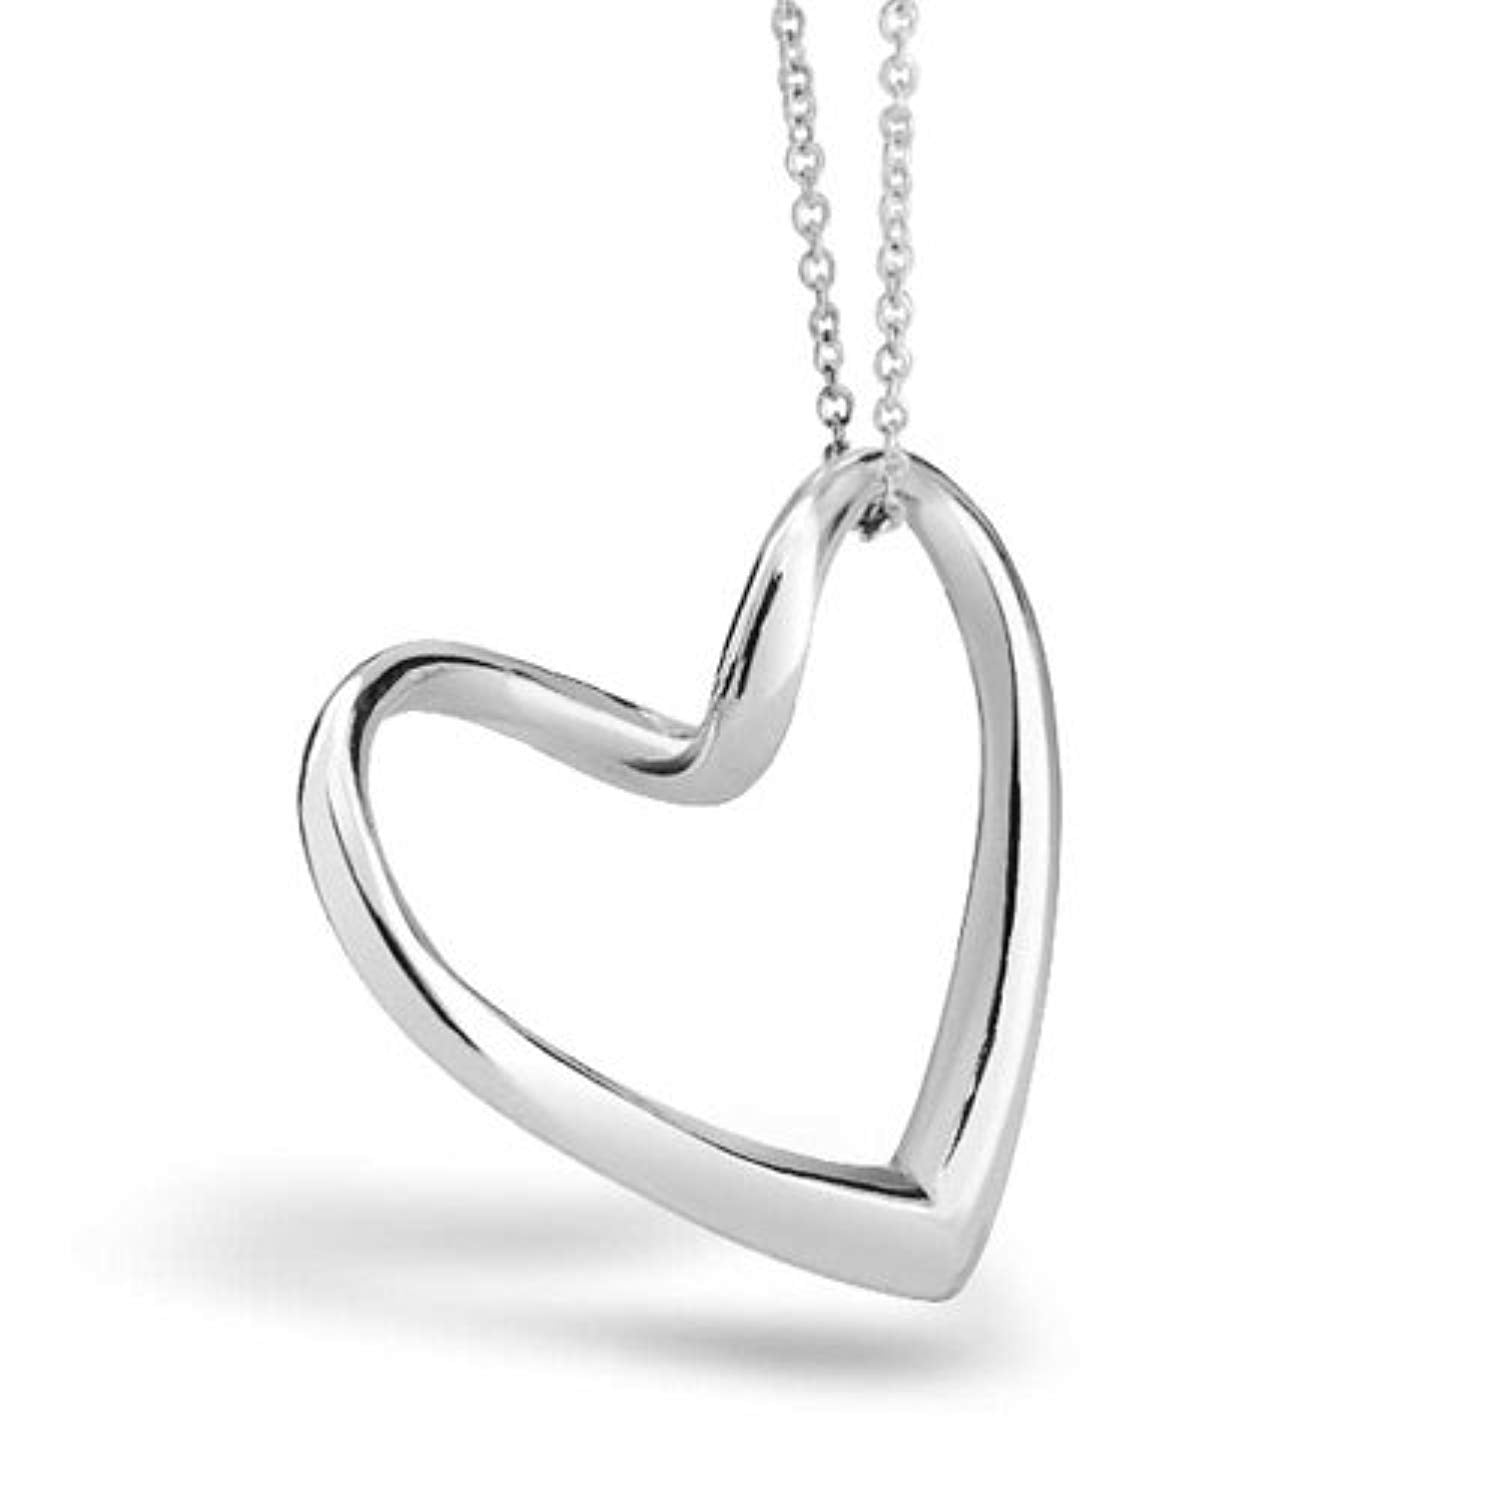 Floating Open Heart Pendant Necklace For Women For Girlfriend 925 Sterling Silver With Chain